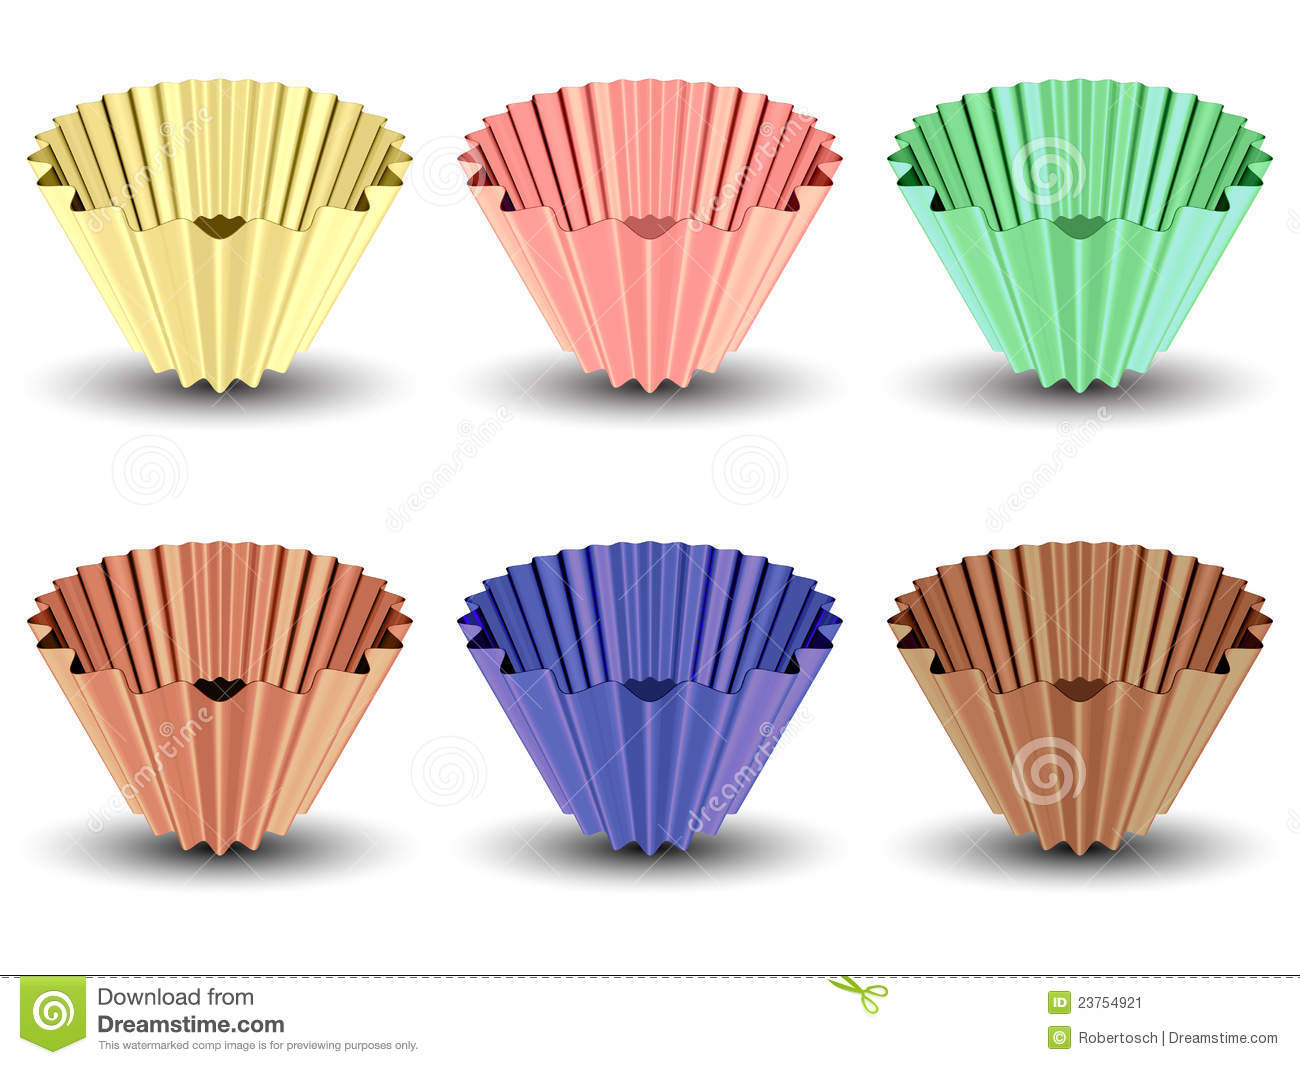 muffin papers These sturdy pressed and fluted paper baking cups are made of shiny glassine paper and are available in three sizes: mini, standard, and large.